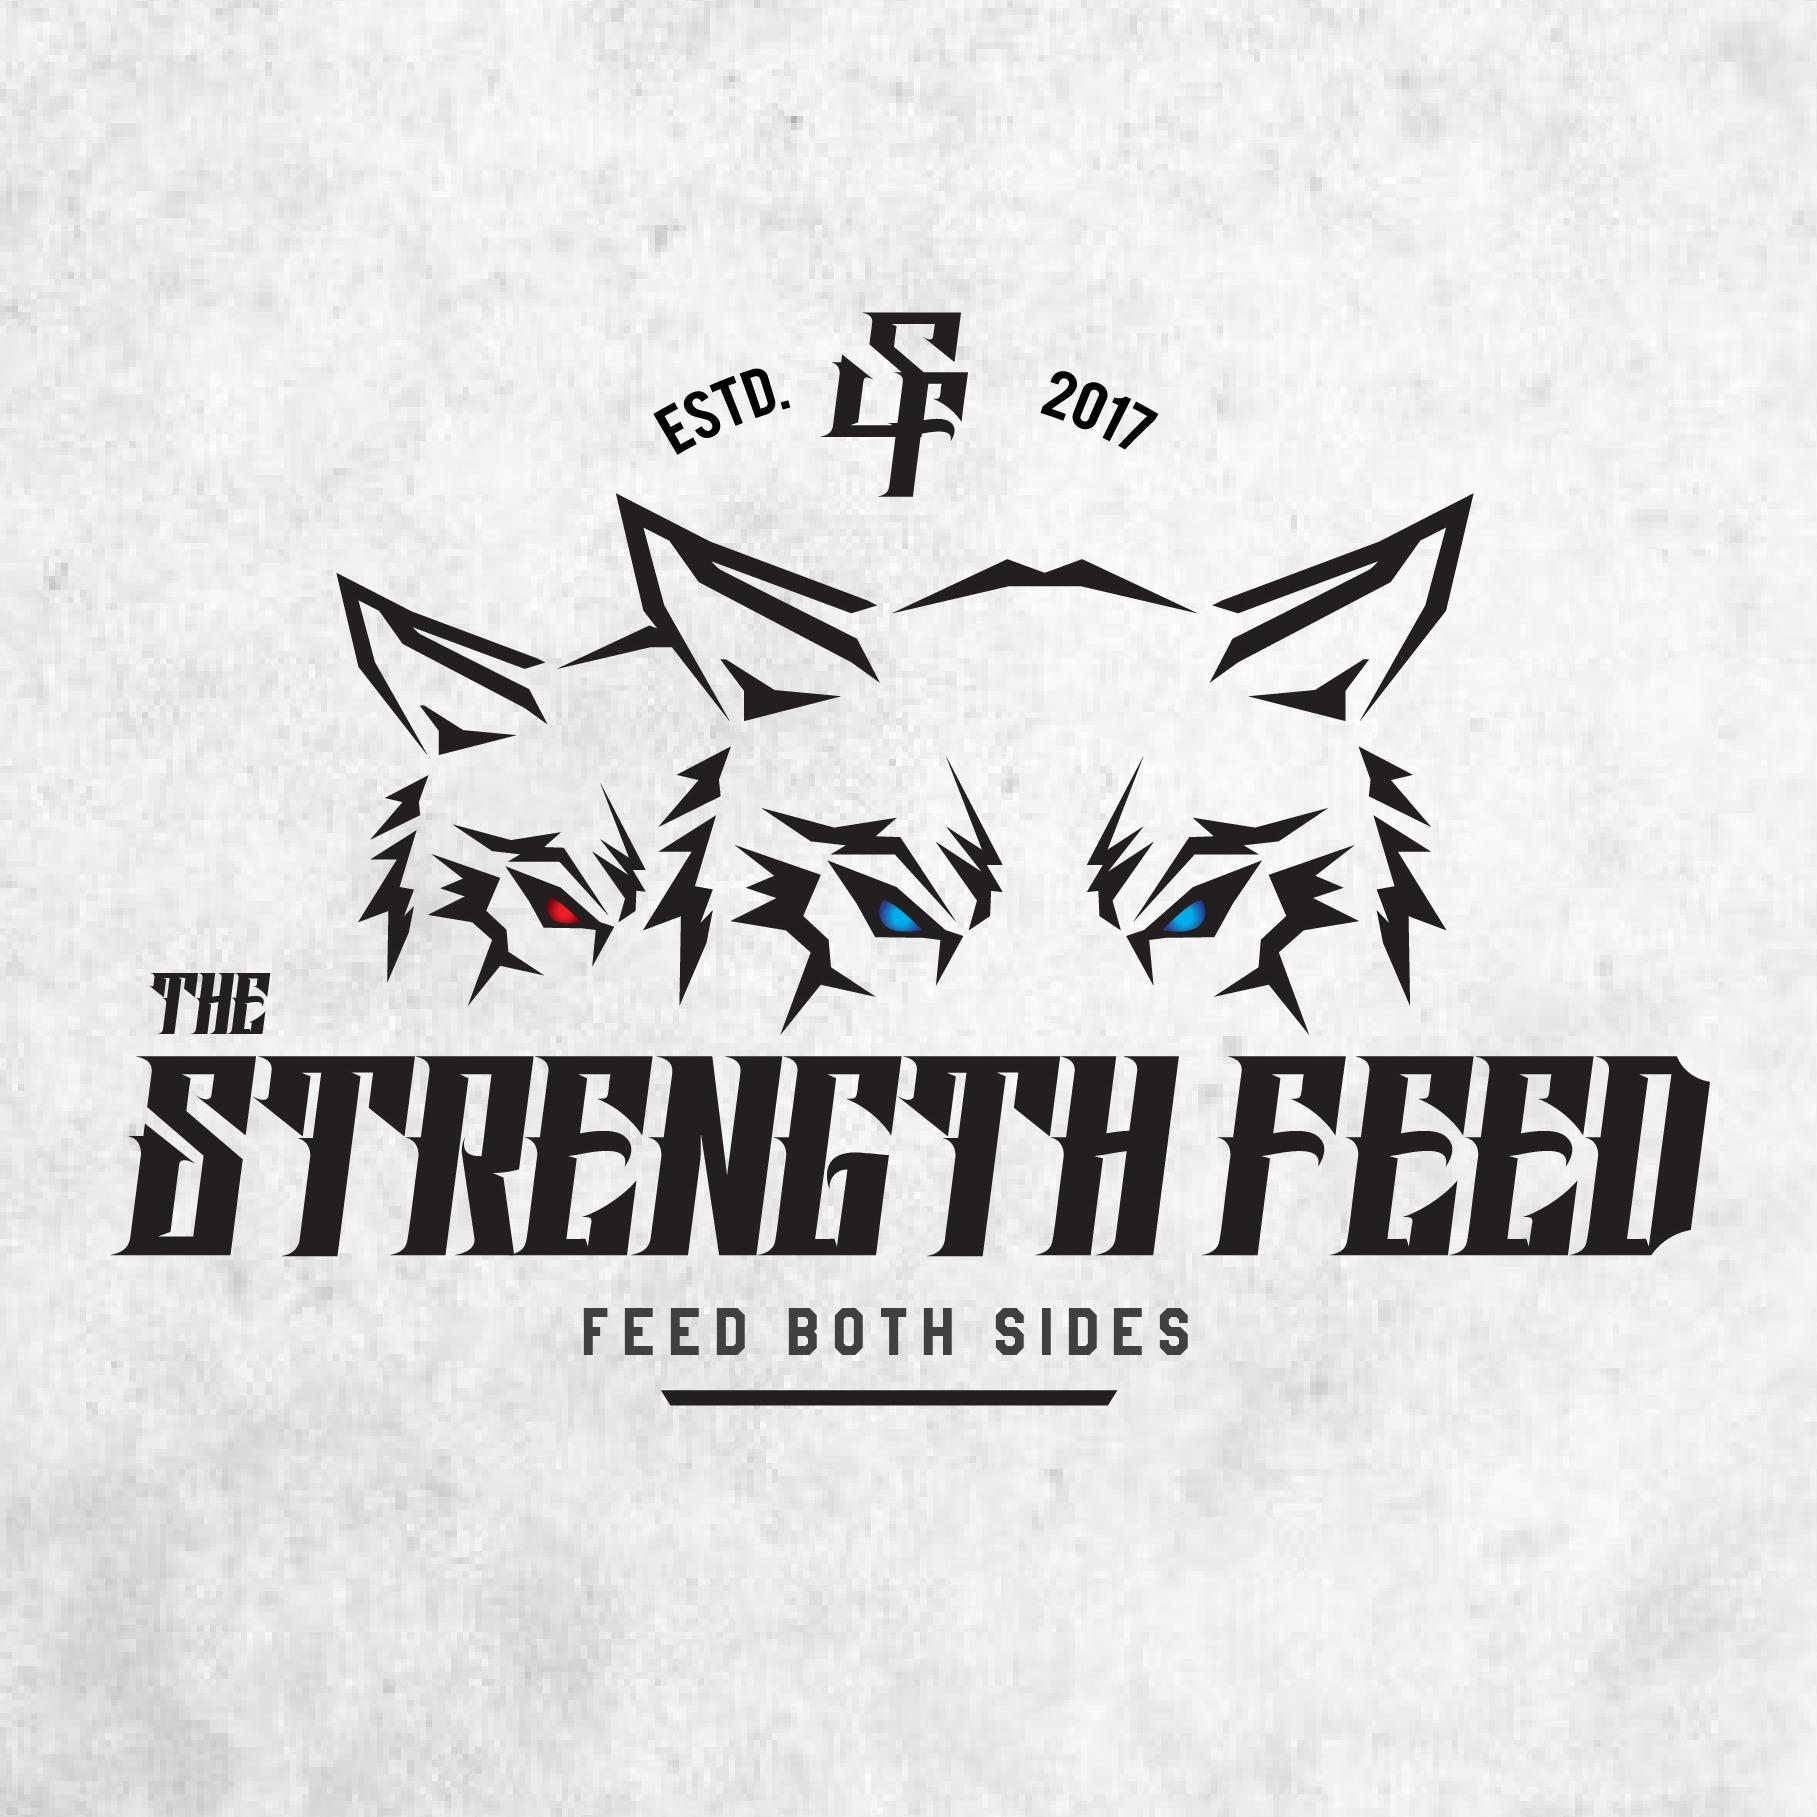 The Strength Feed